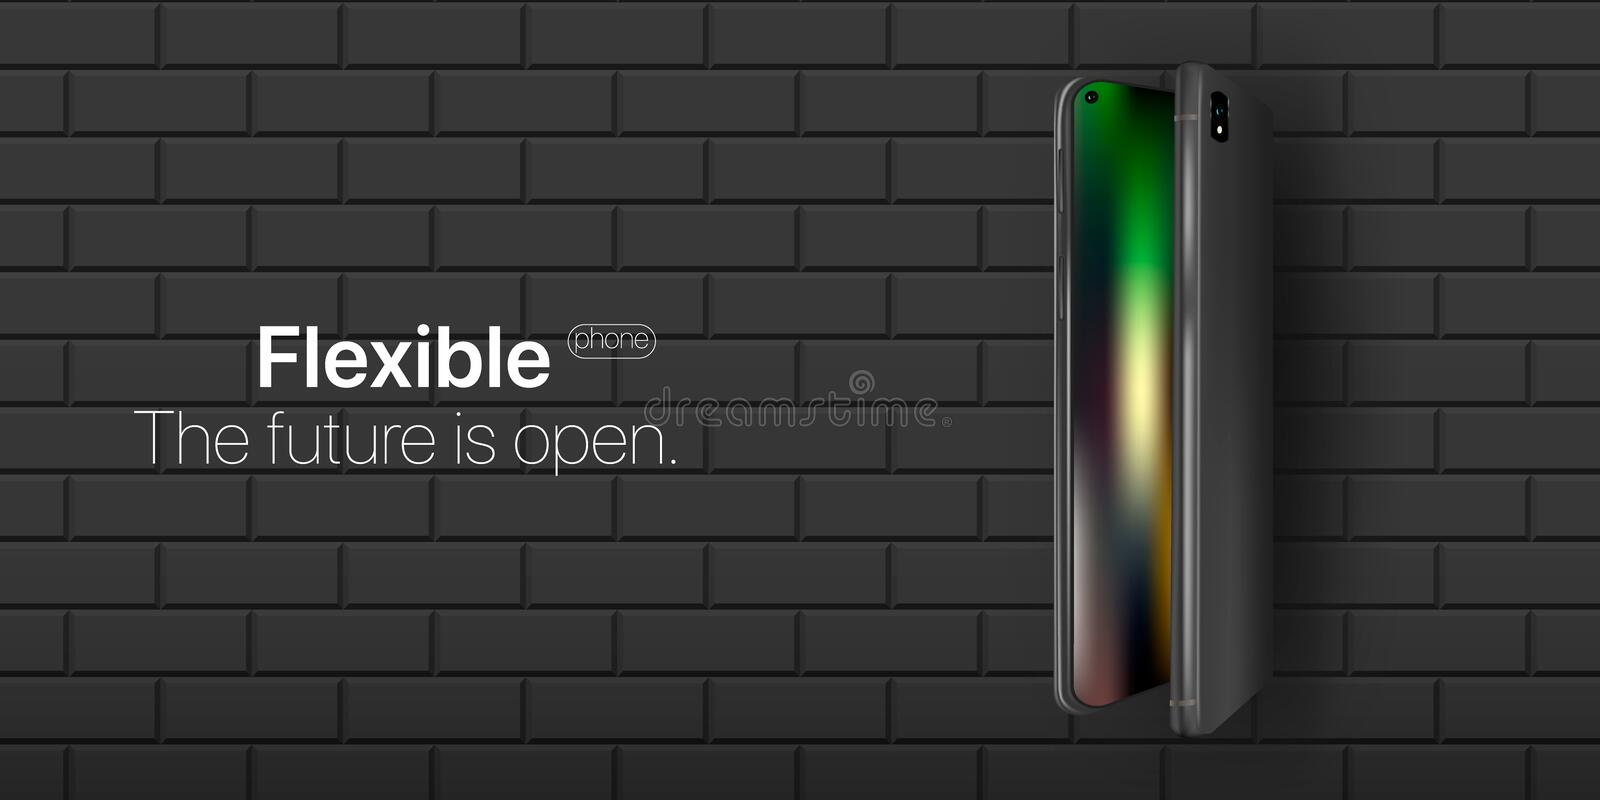 Flexible phone. Concept new technology in phone industries. Flexible display of mobile phone bended hanging over wall. New technology transforming phone into a vector illustration